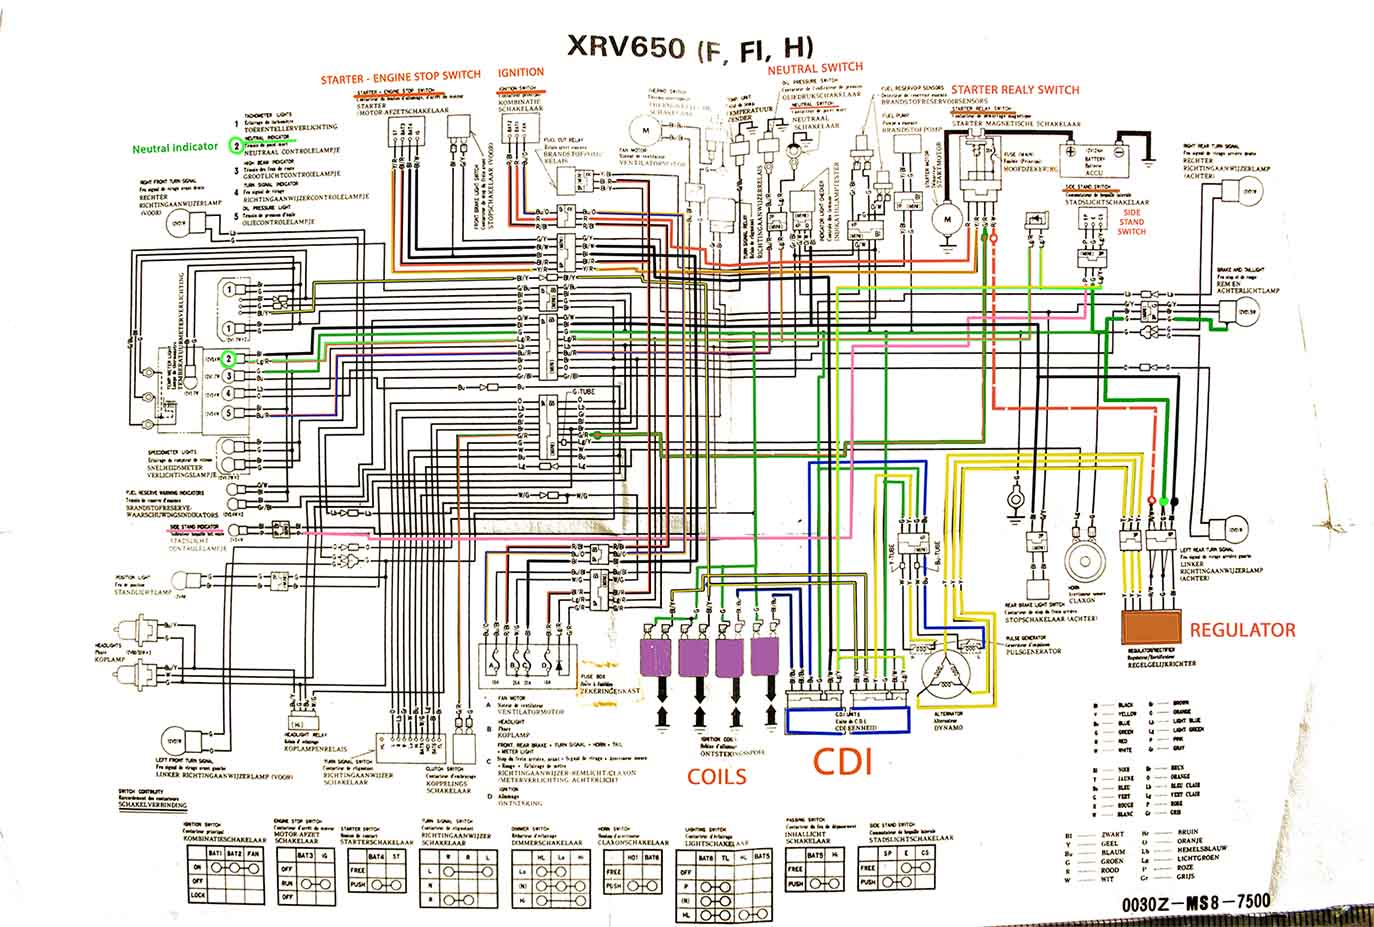 Mysterious ignition issue. Wiring diagram. | Honda XRV ForumHonda XRV Forum